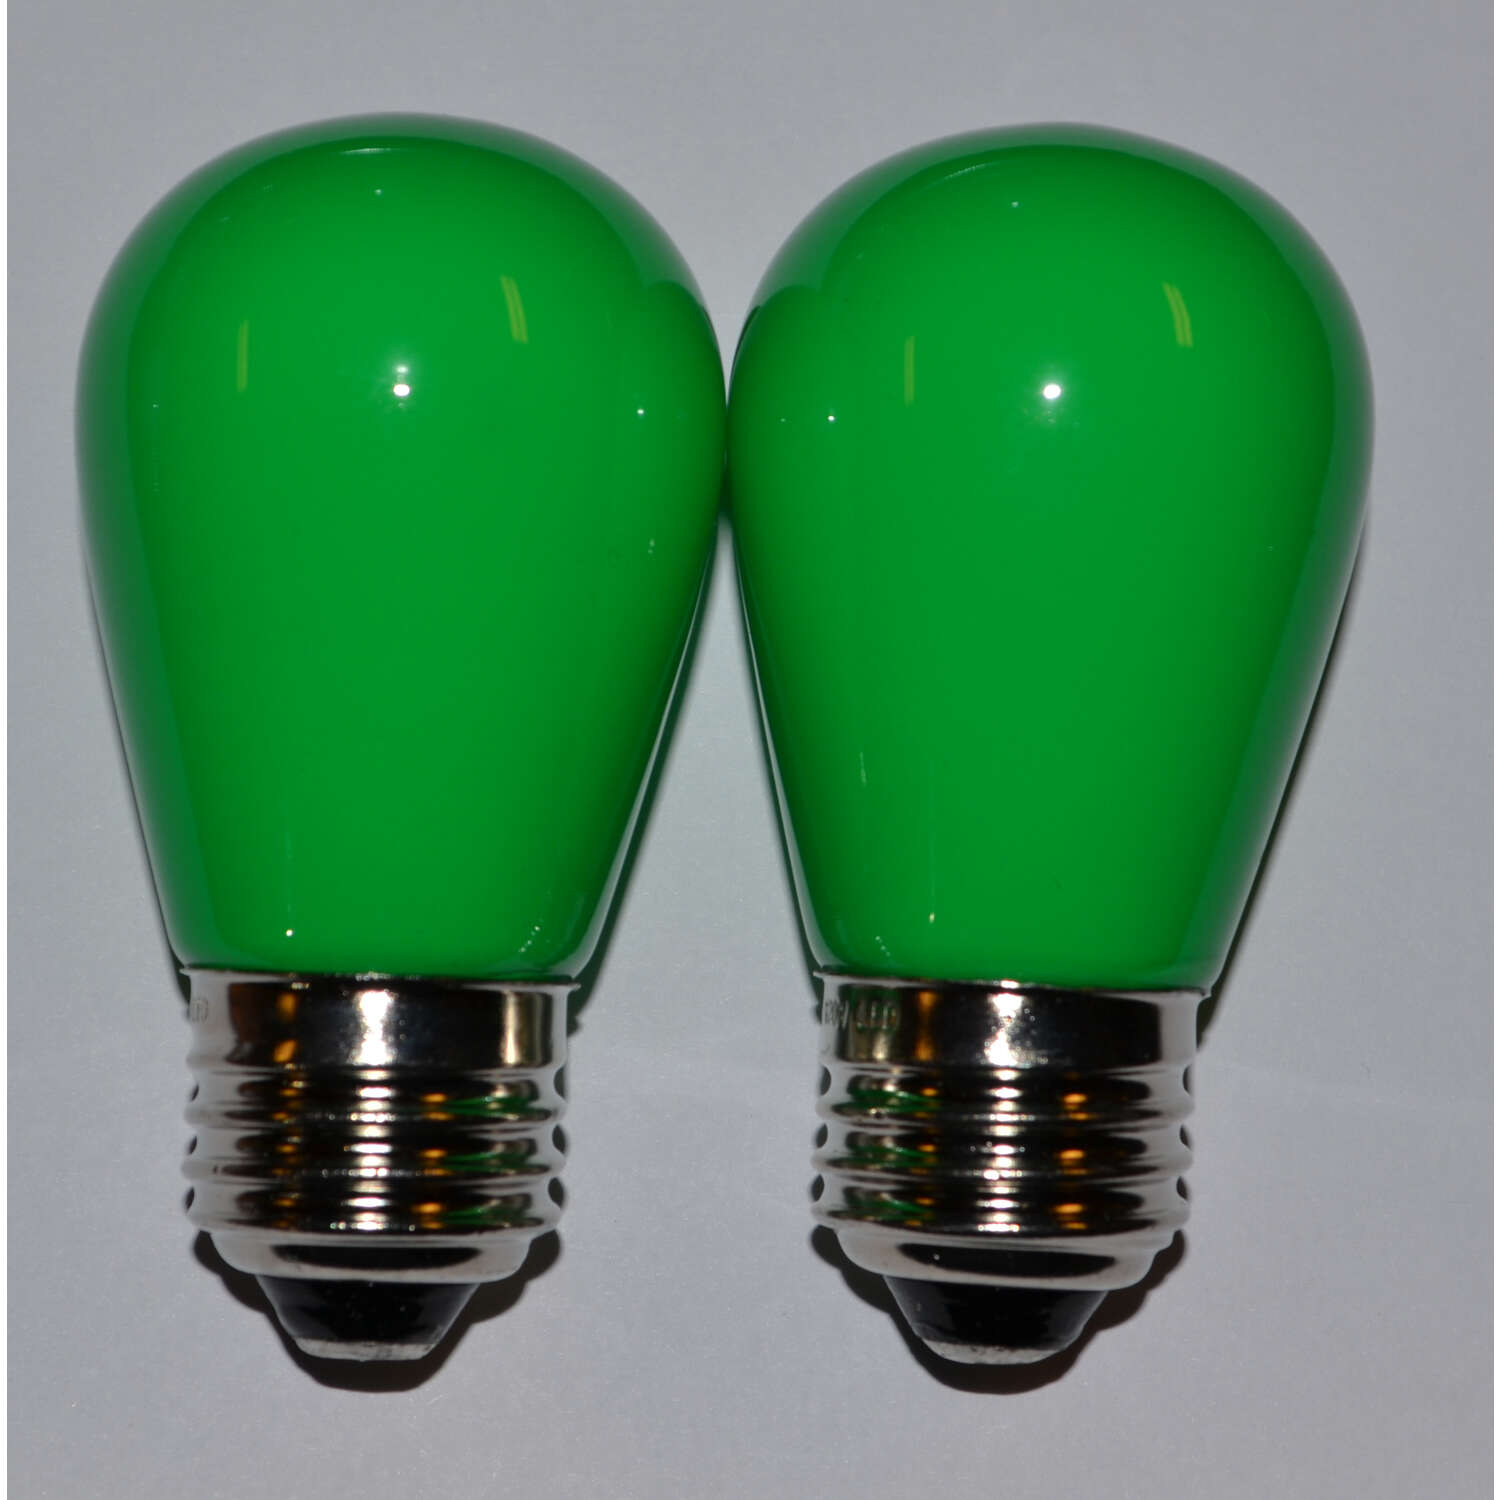 Holiday Bright Lights  LED  S14  Green  2 count Replacement  Christmas Light Bulbs